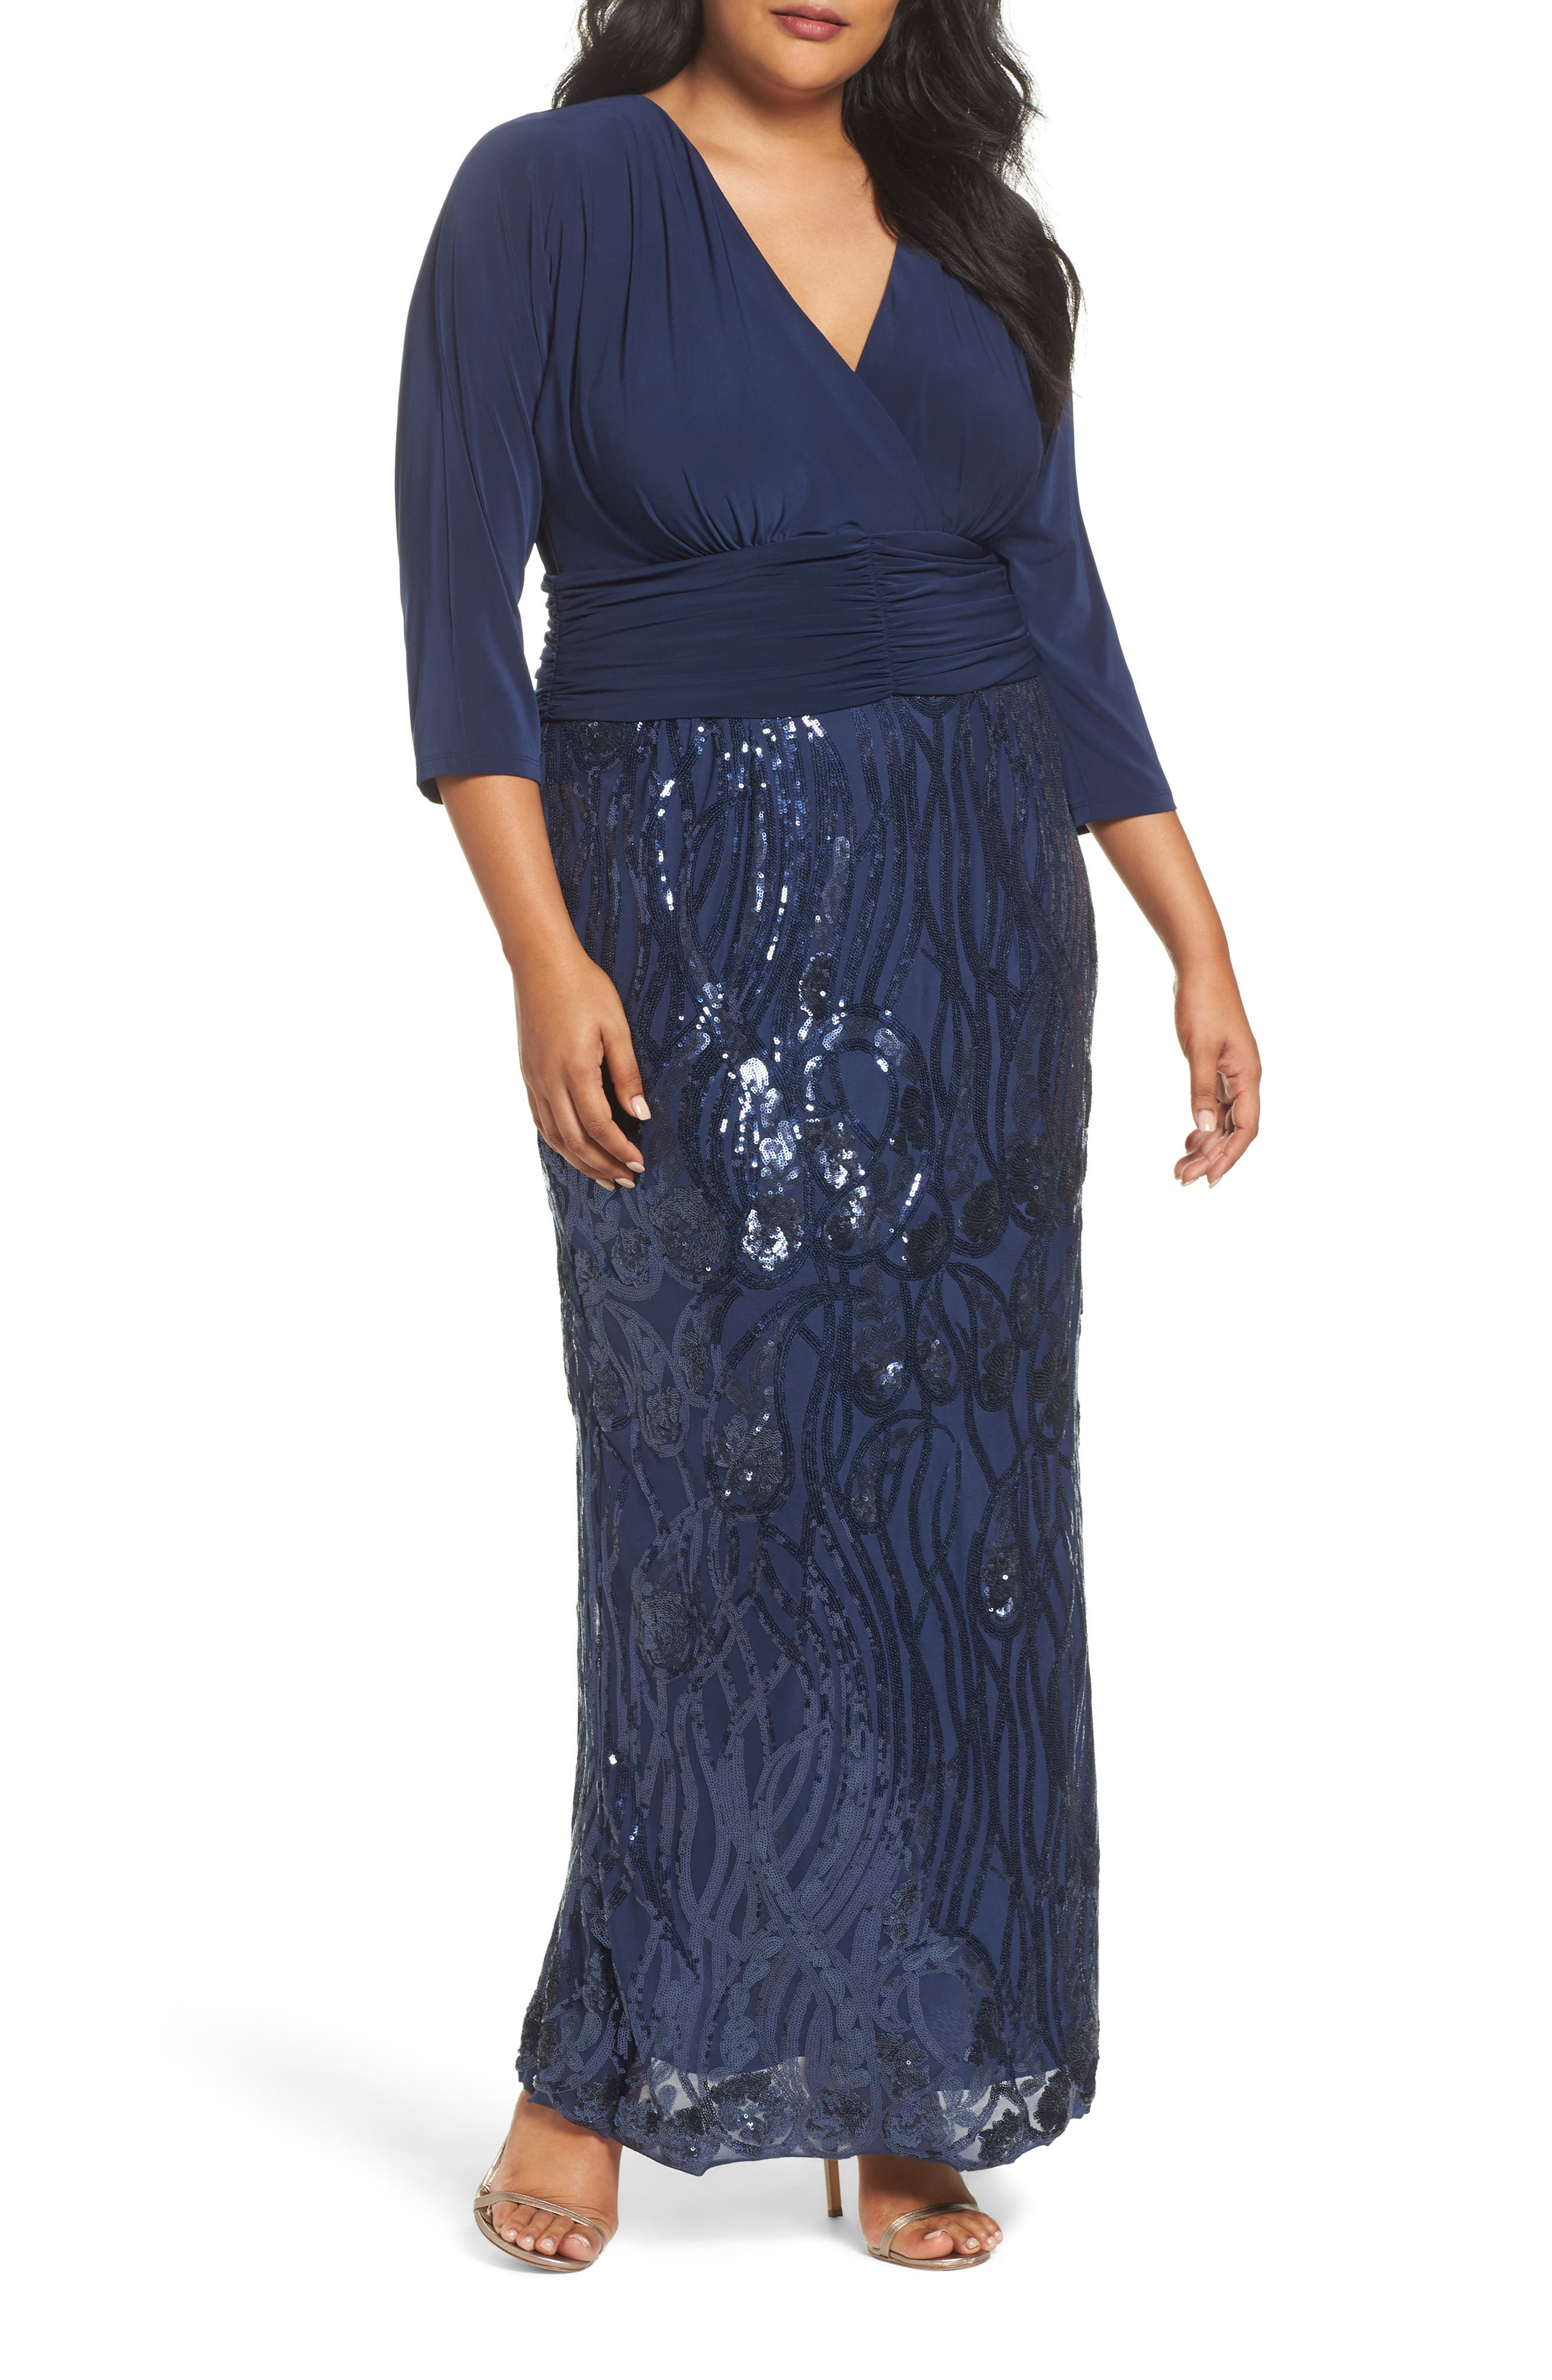 Alternate Image 1 Selected - Brianna Embellished Shirred Waist Gown (Plus Size)